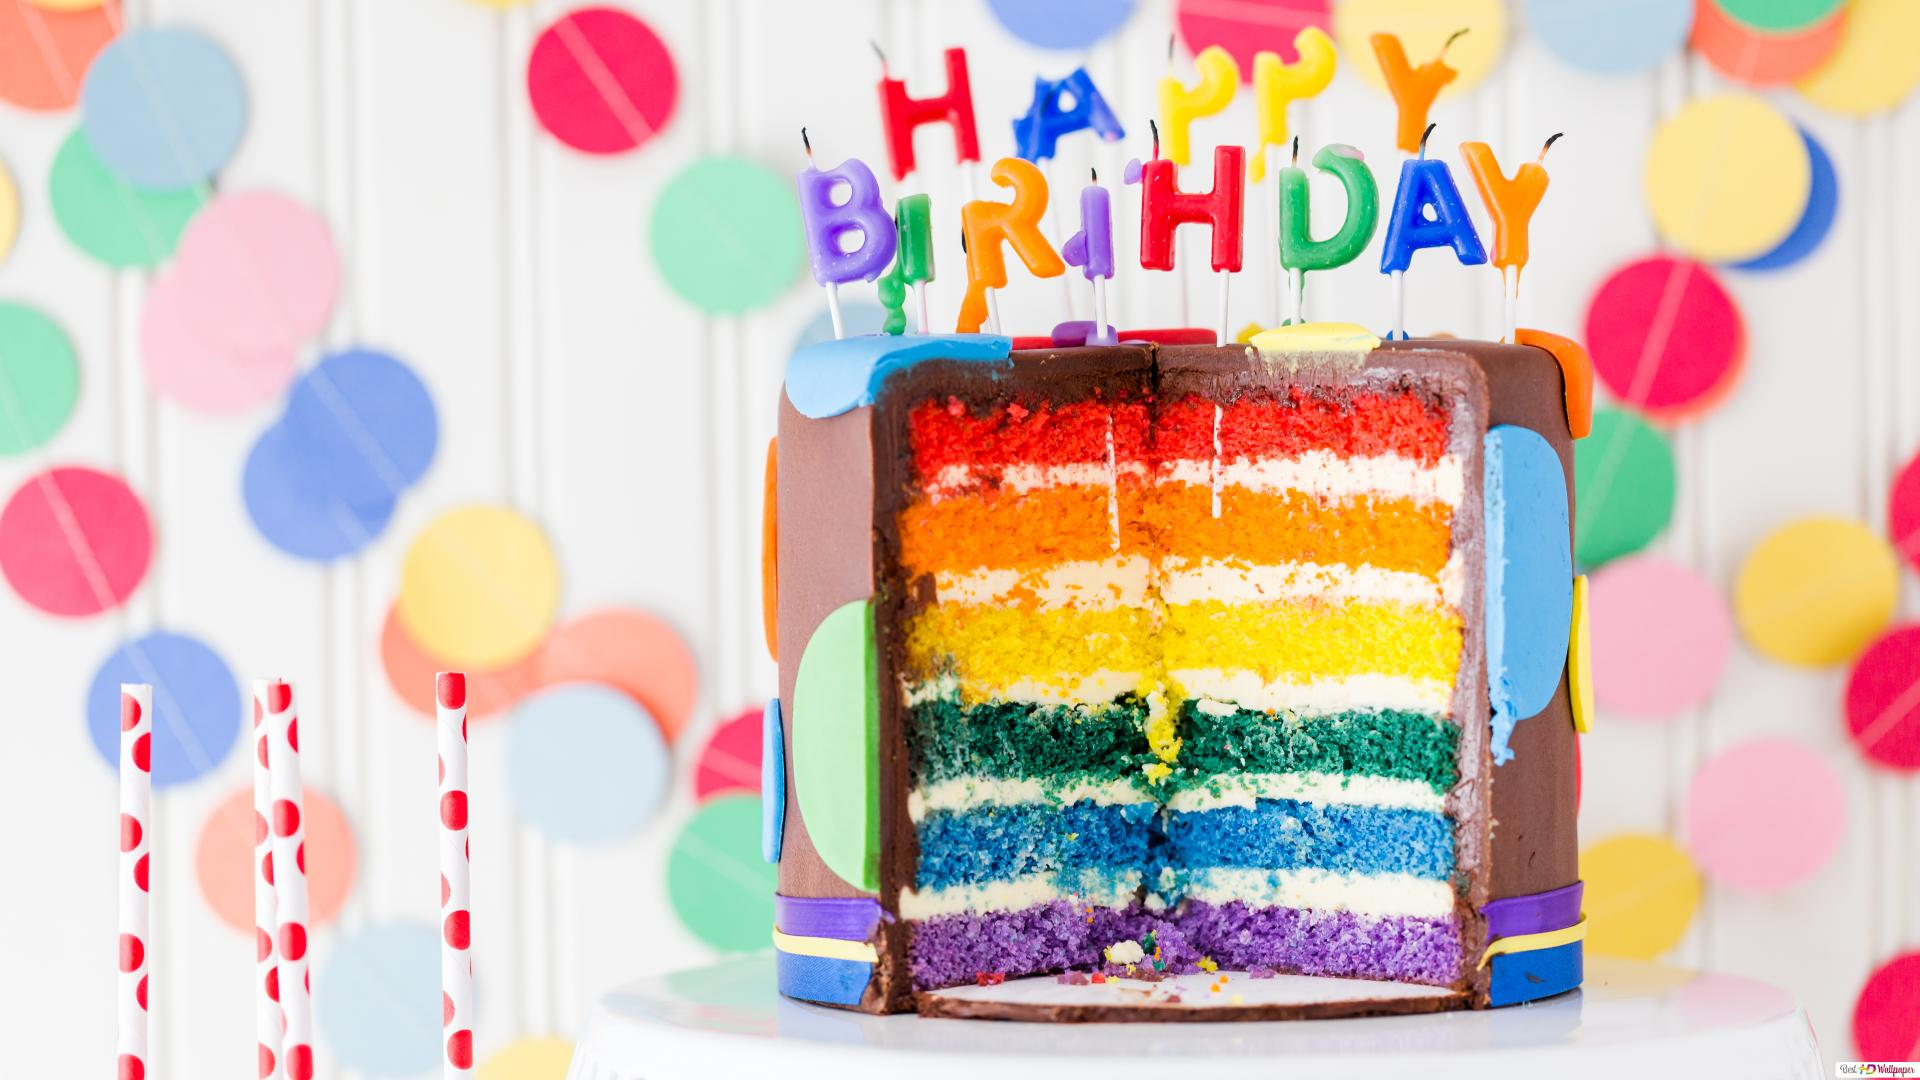 Happy Birthday Rainbow Cake HD Wallpaper Download